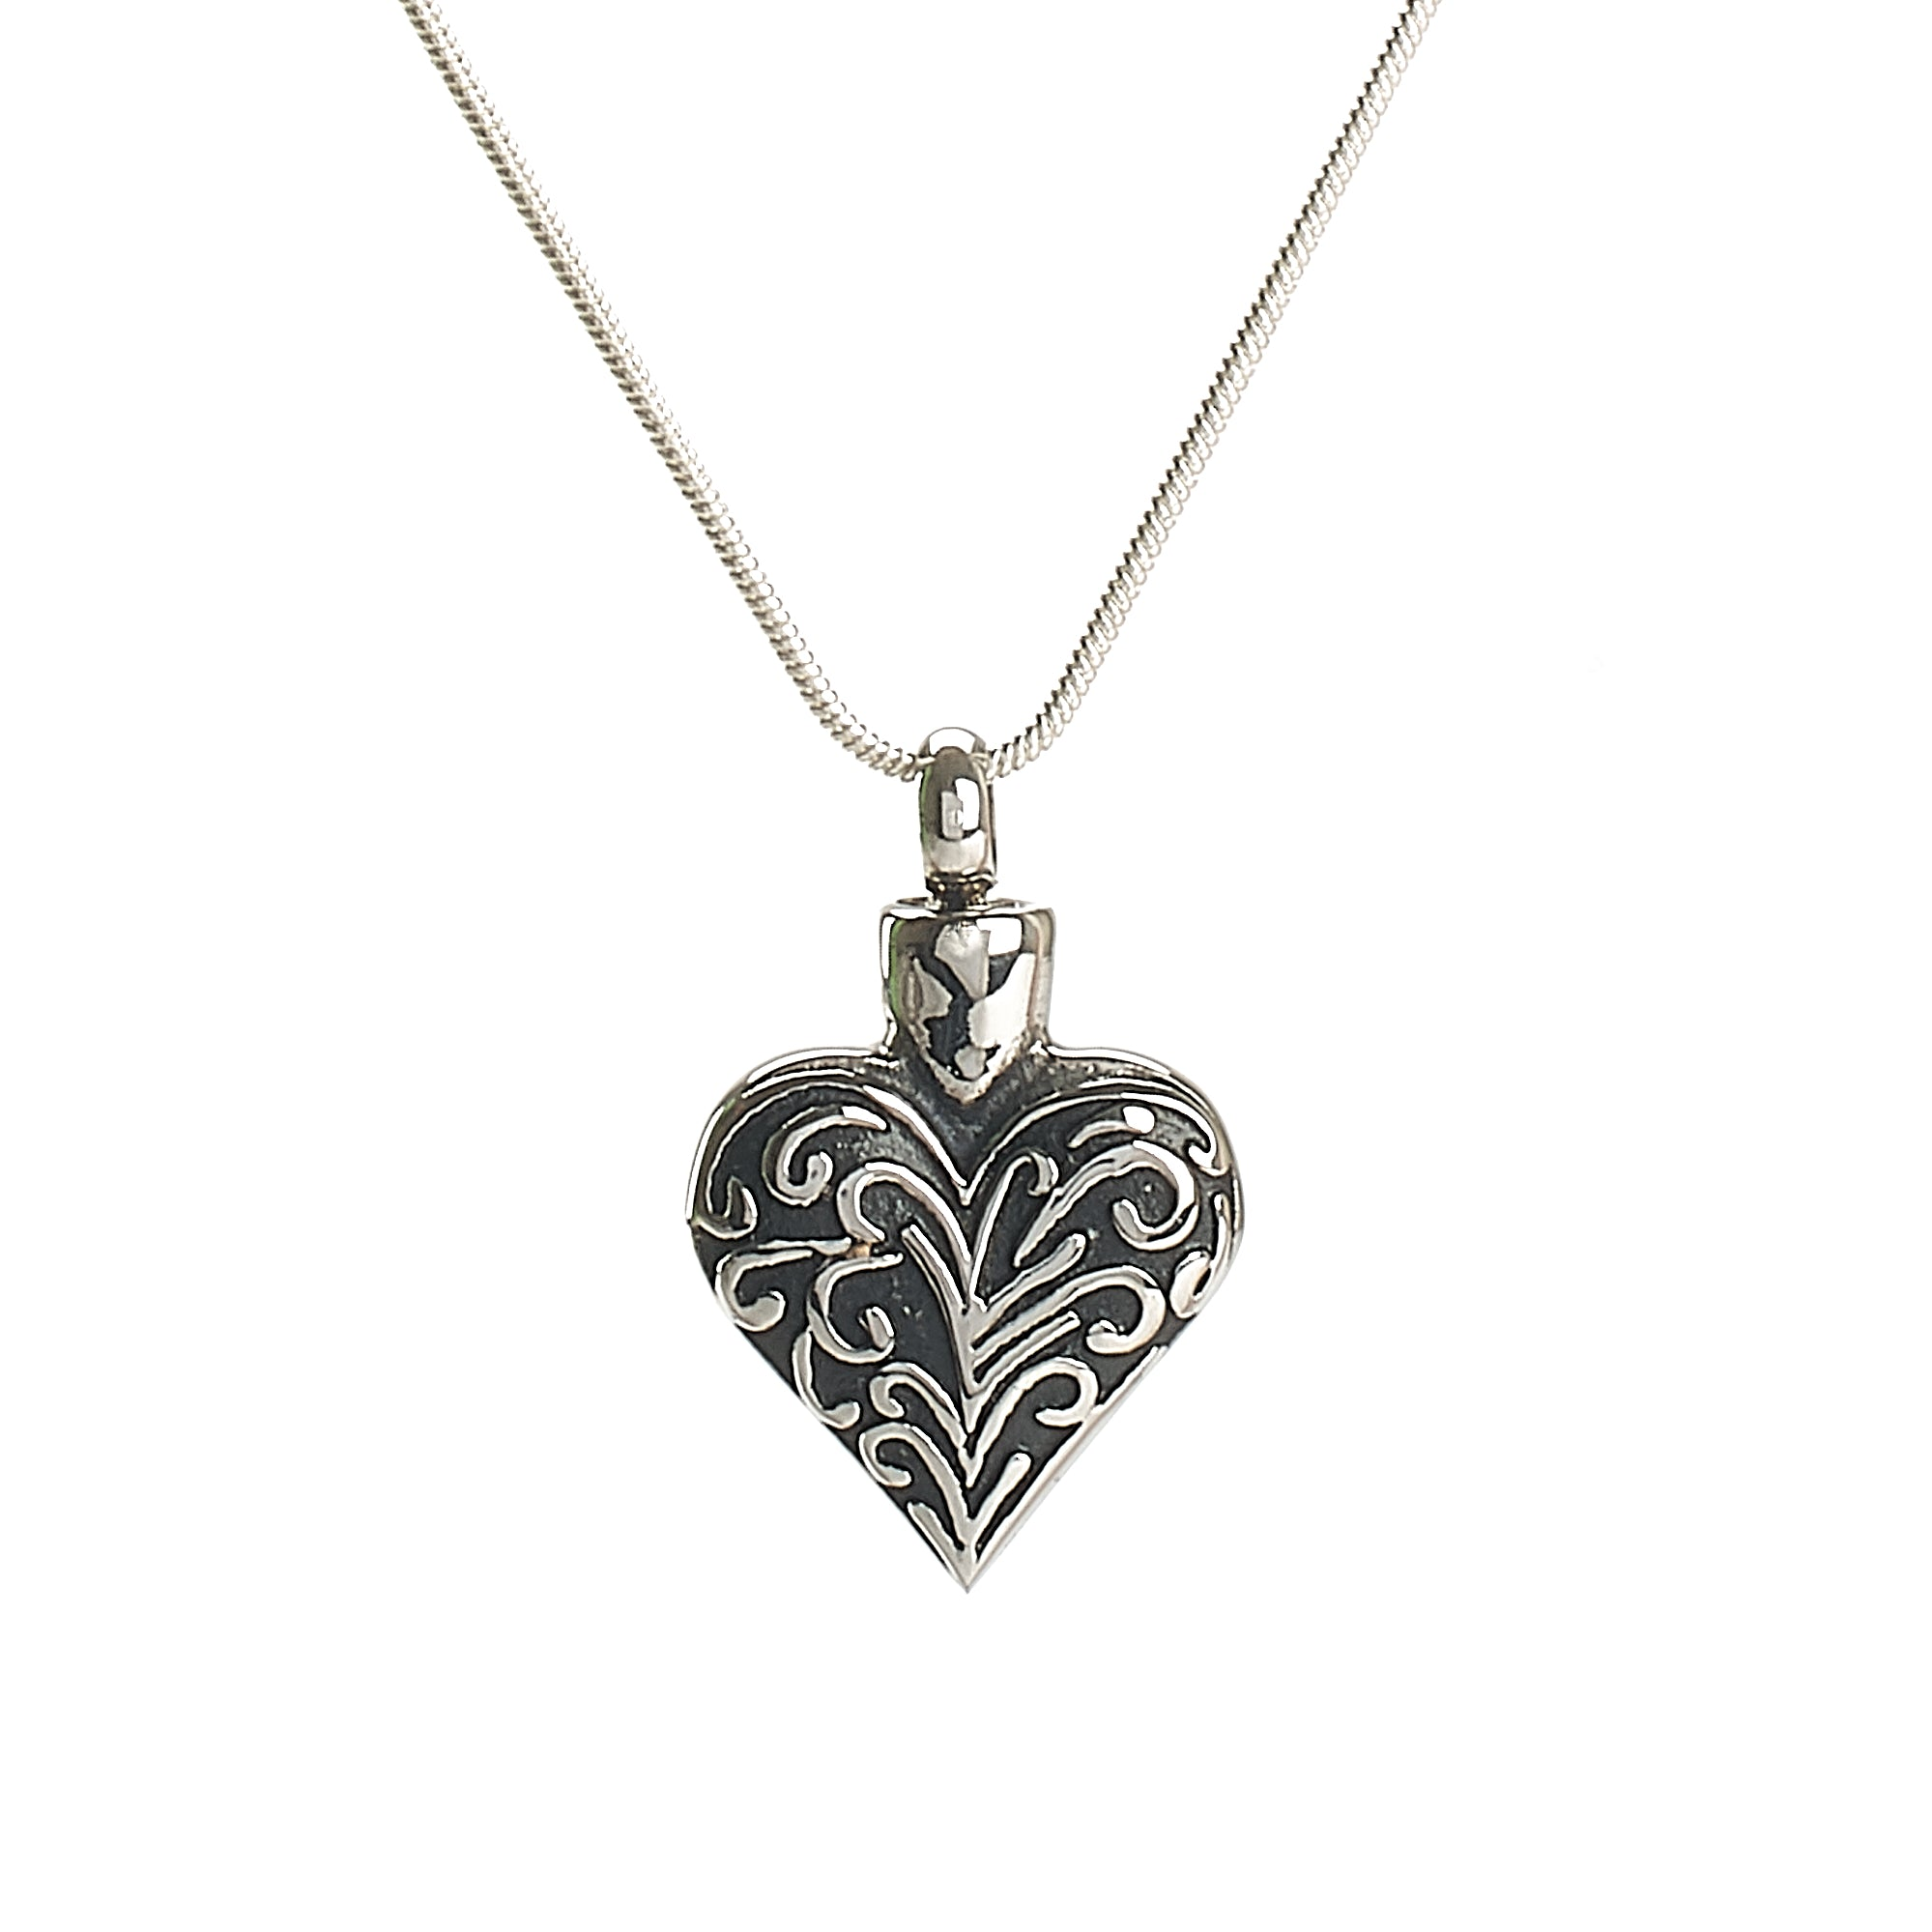 Cremation Pendant - Silver Heart with Filigree